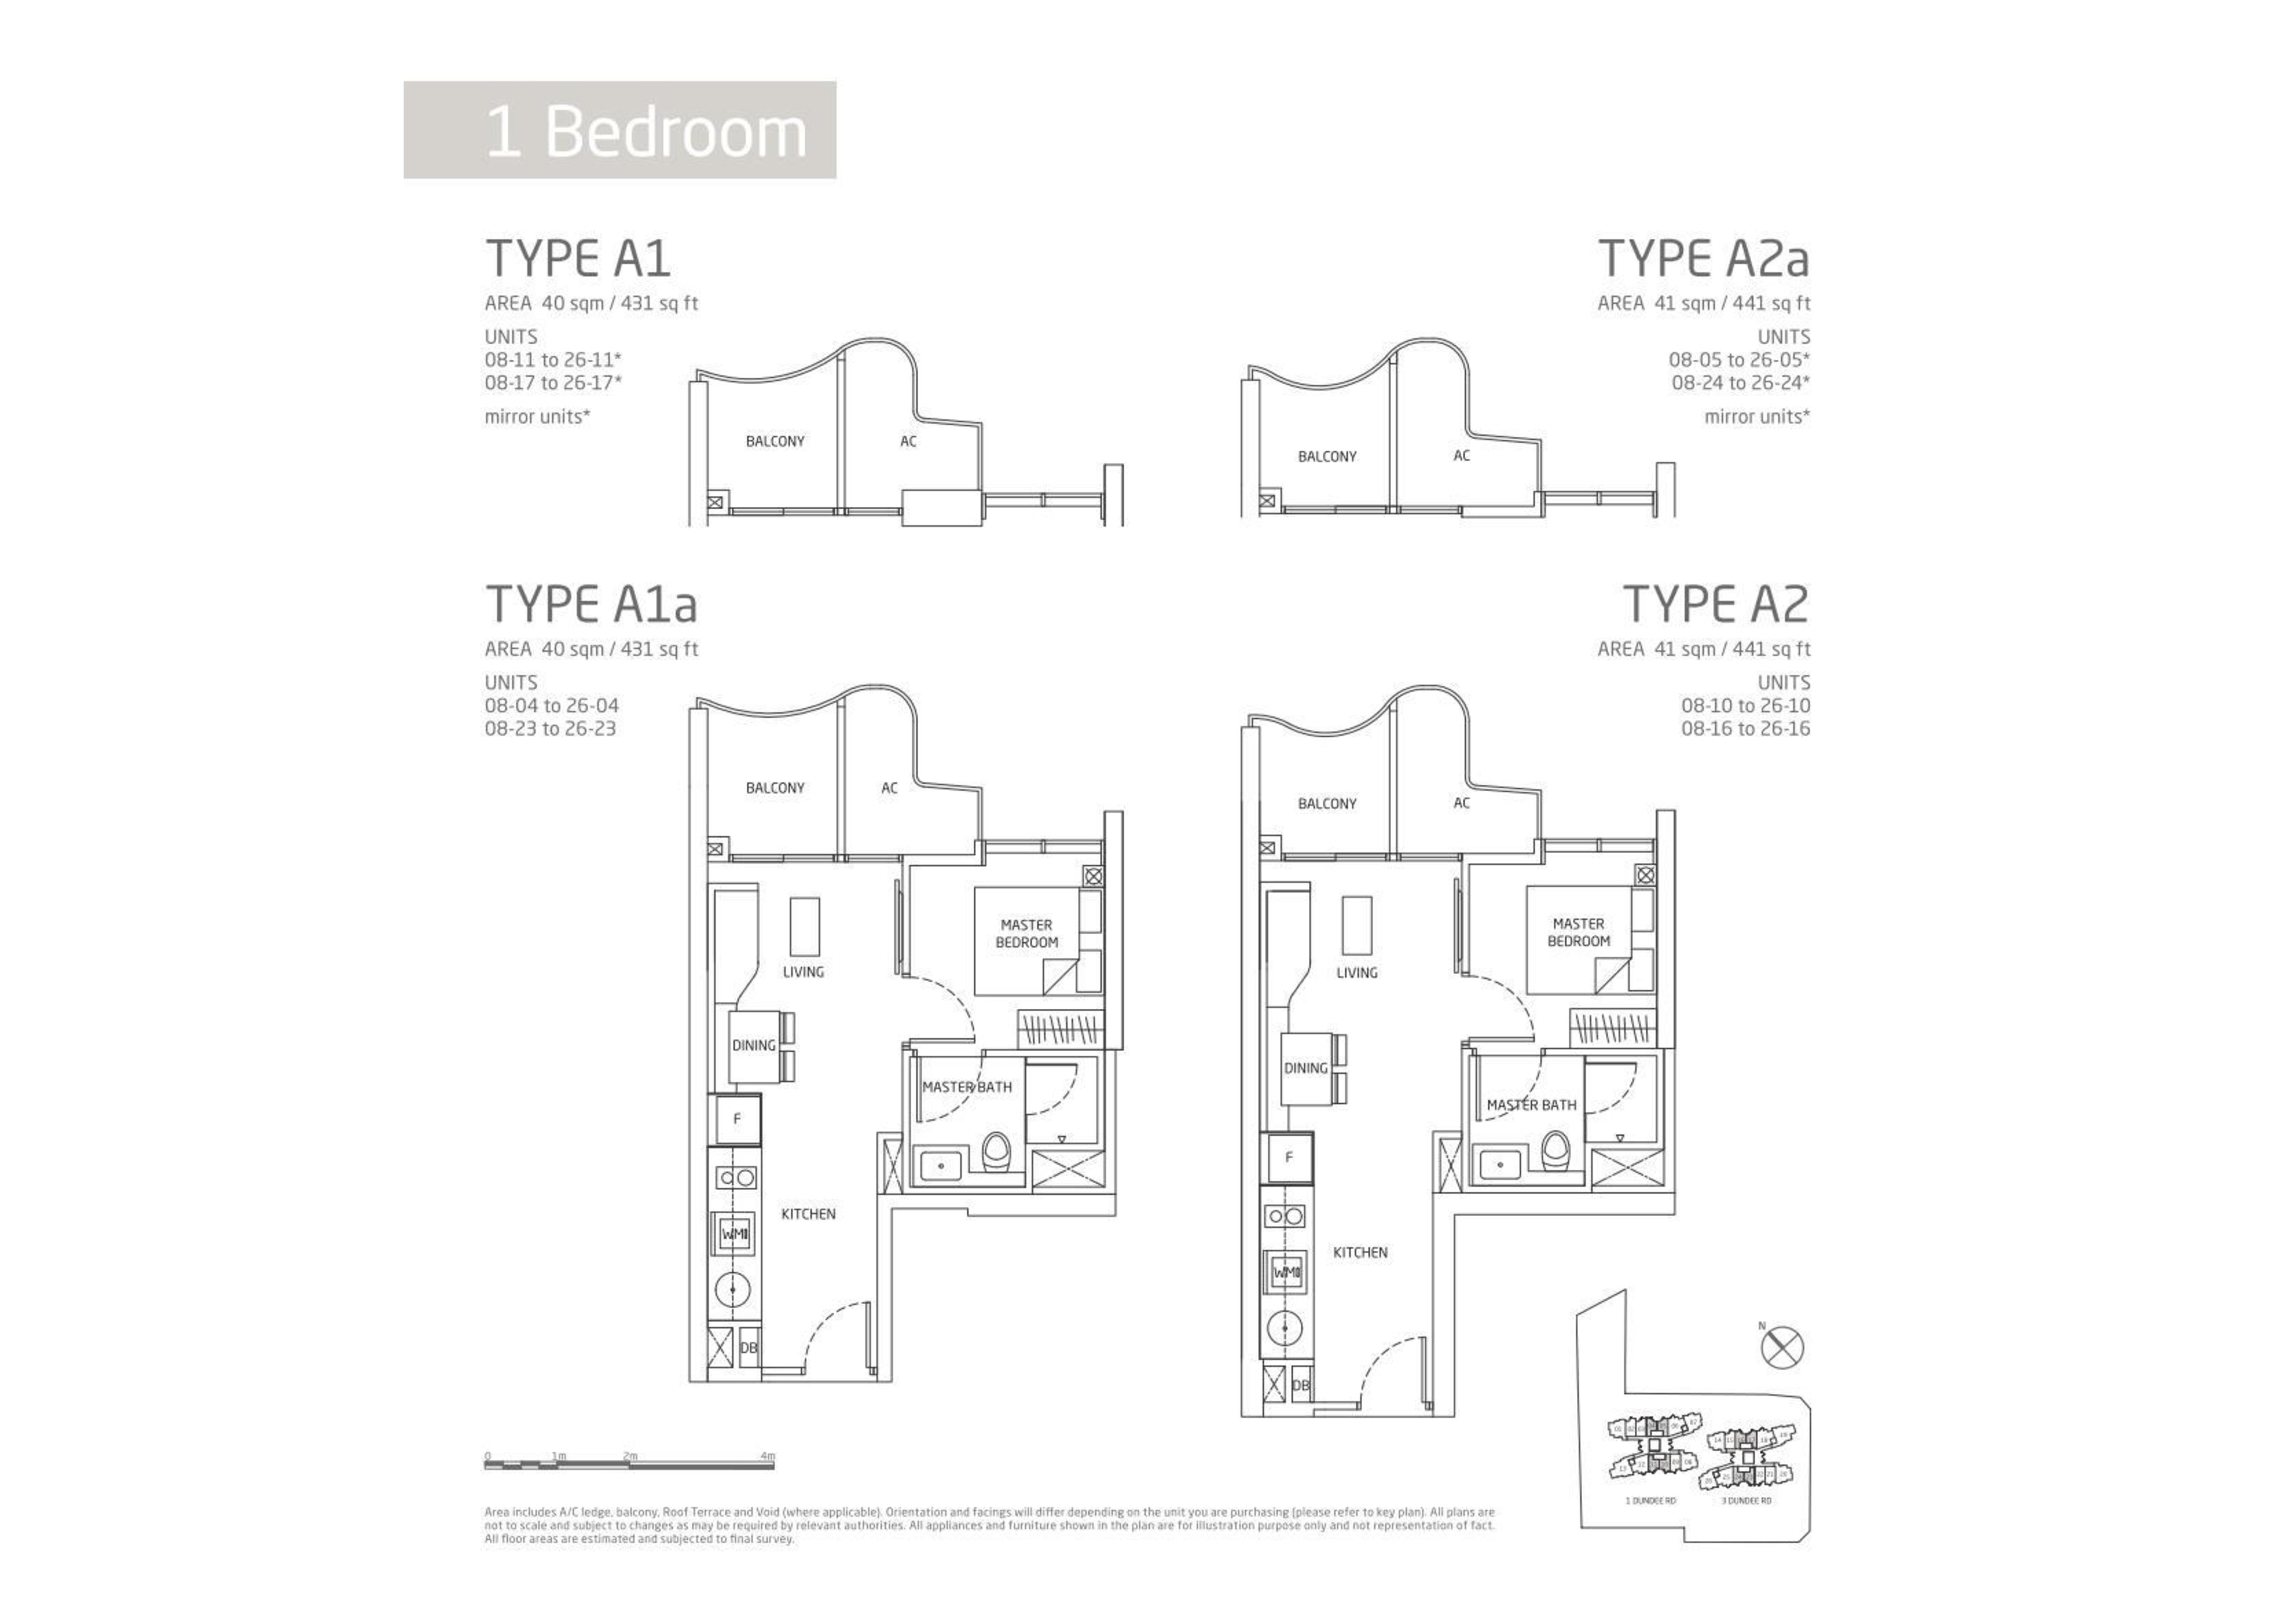 Queens Peak 1 Bedroom Floor Plans Type A1, A1a, A2 and A2a